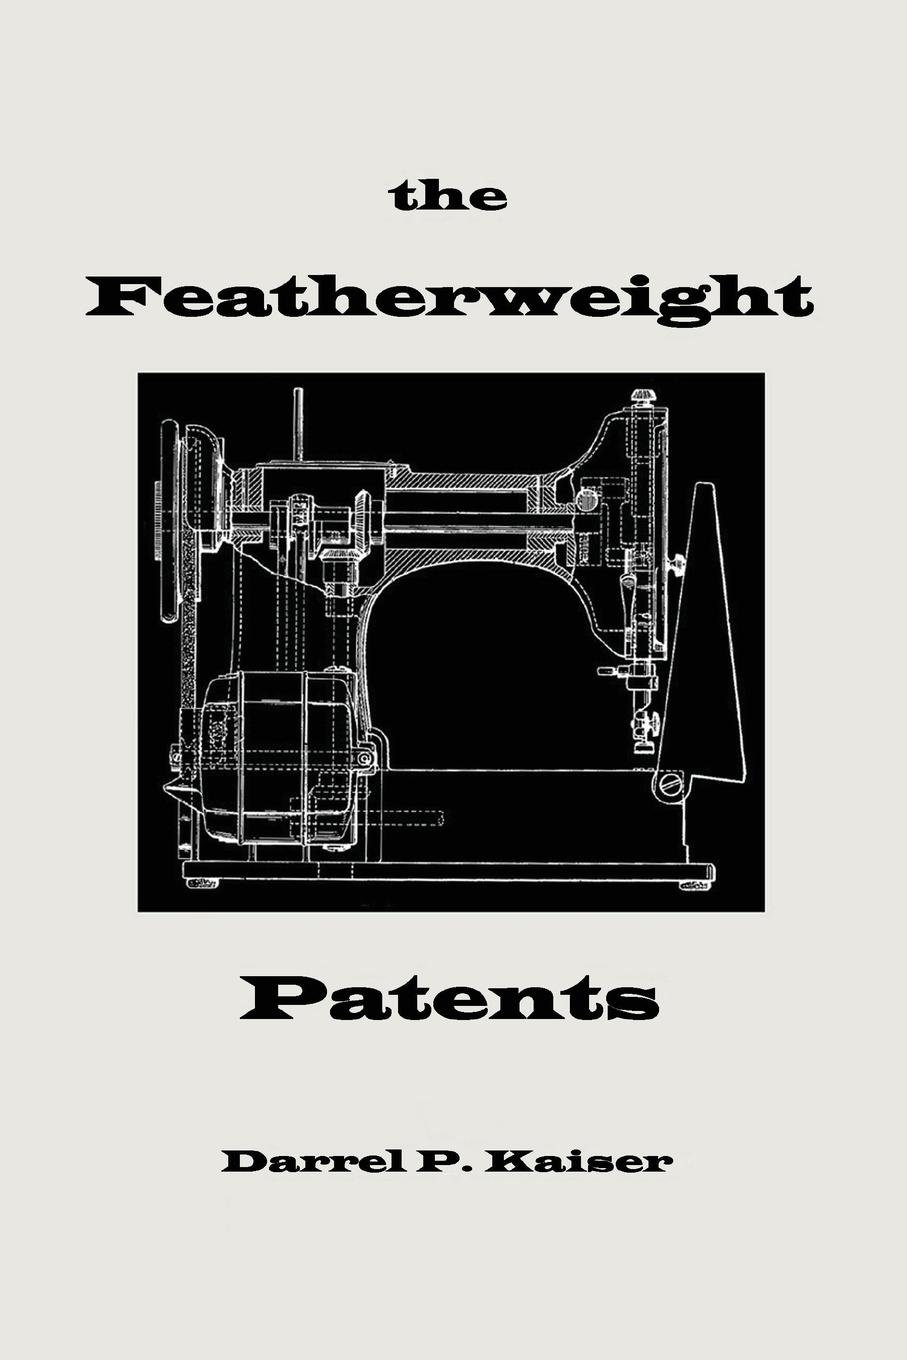 Darrel P. Kaiser The Featherweight Patents